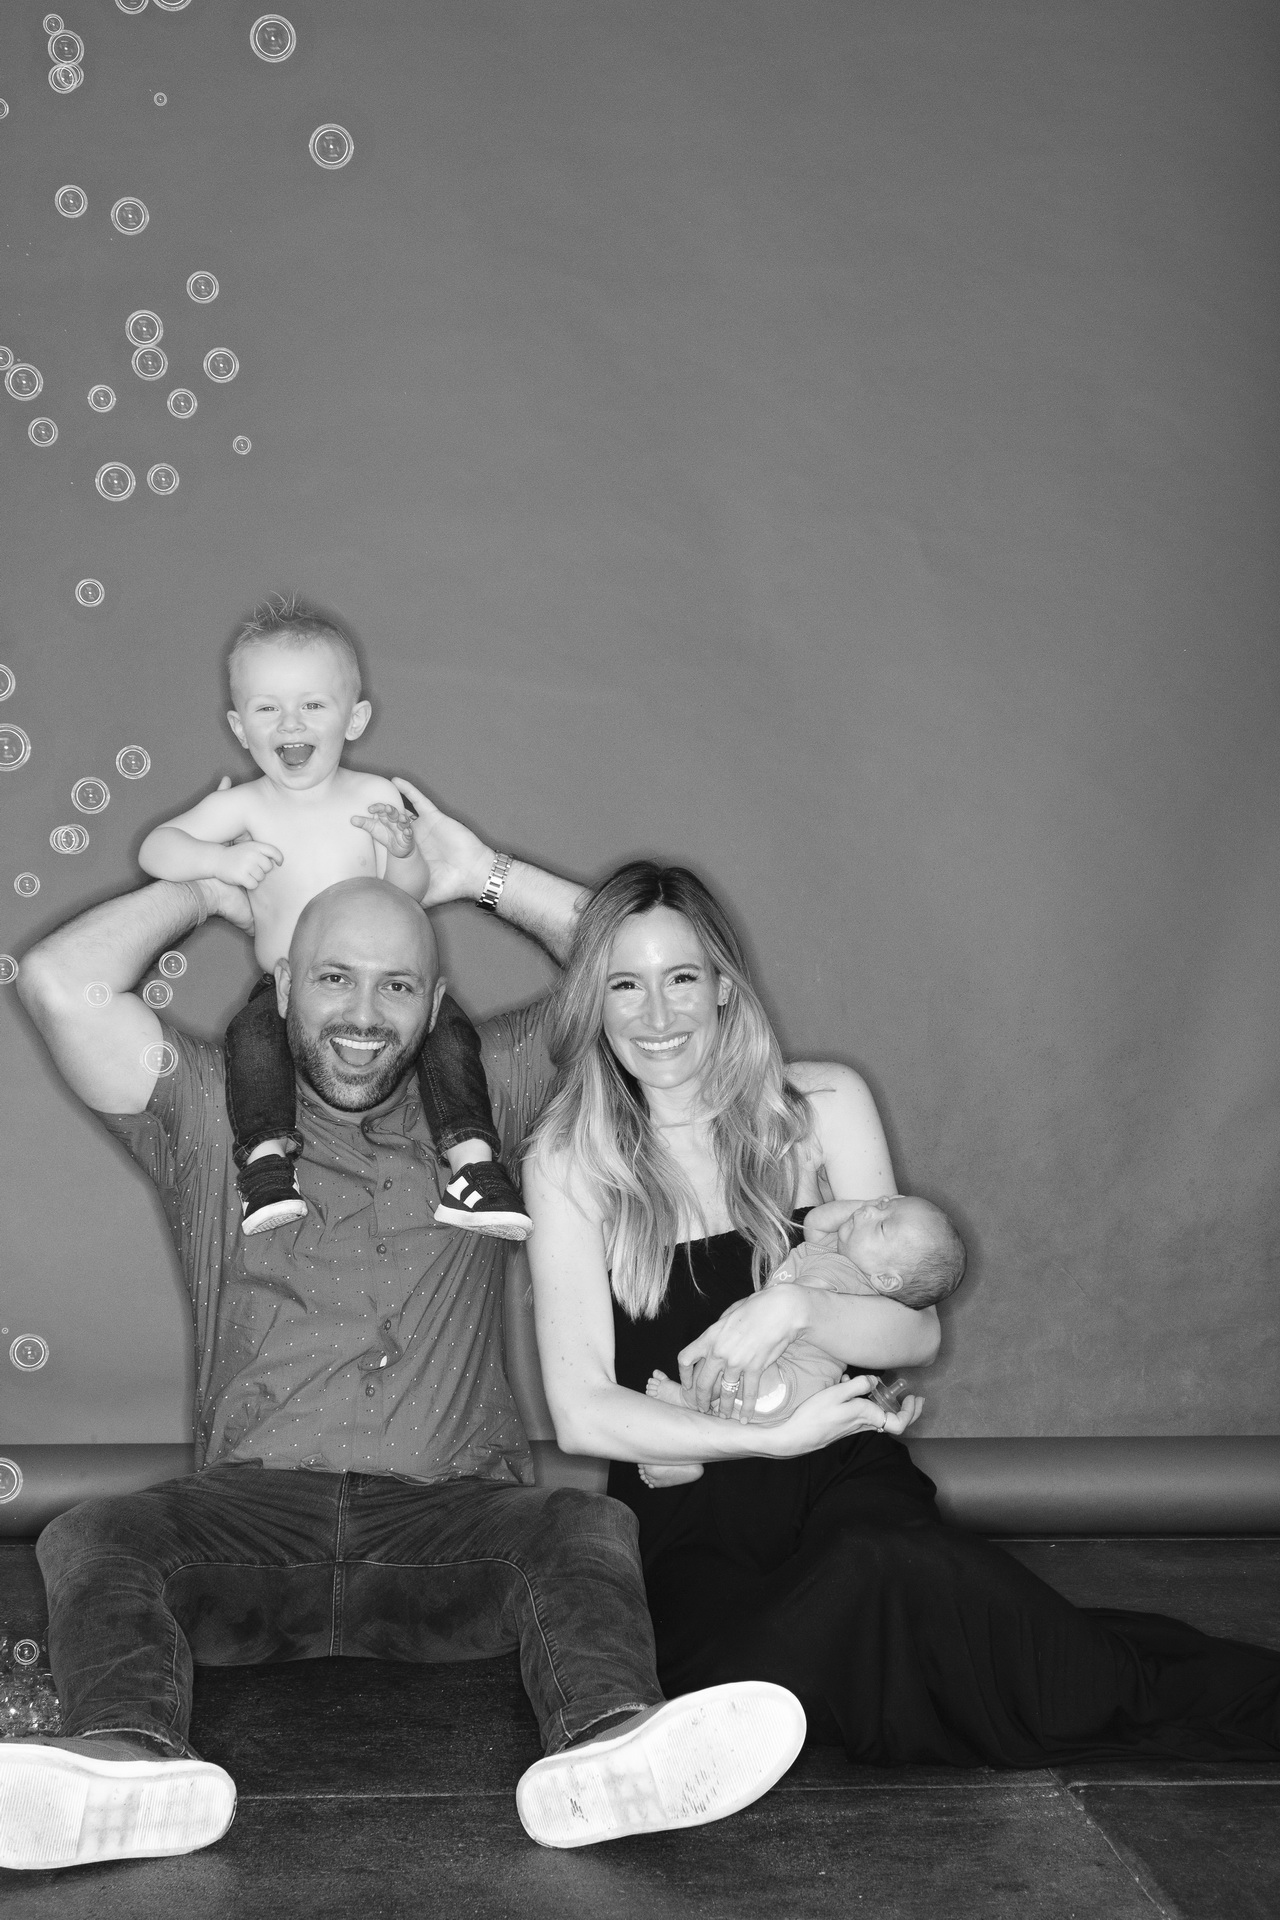 Family fun in the studio celebrating baby brother, and of course bubbles